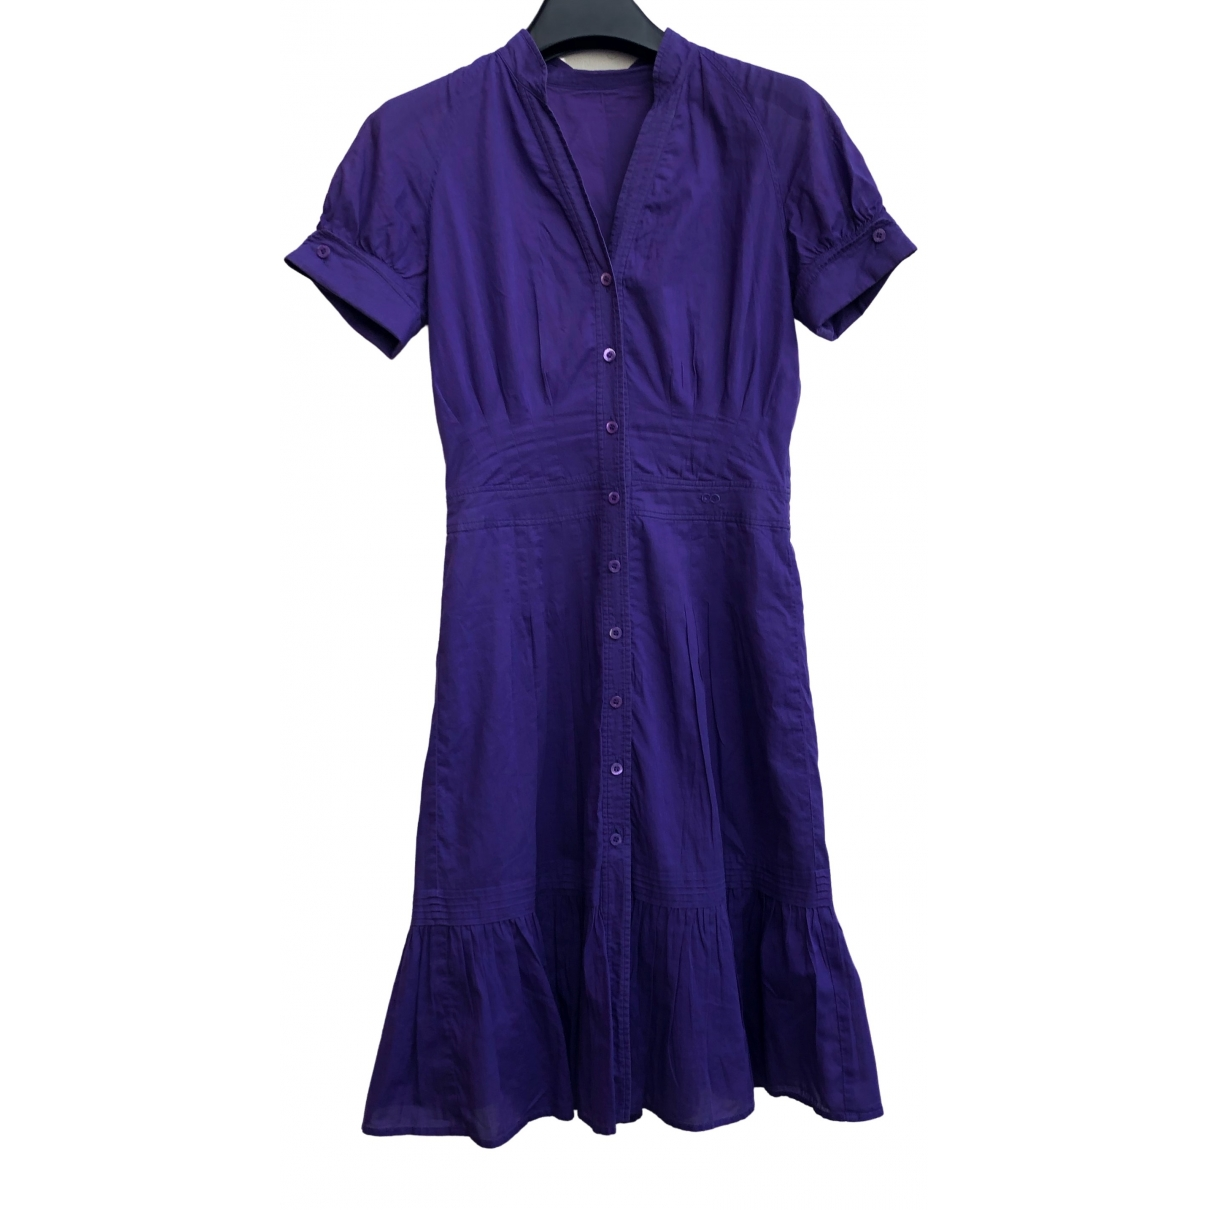 Escada \N Purple Cotton dress for Women S International